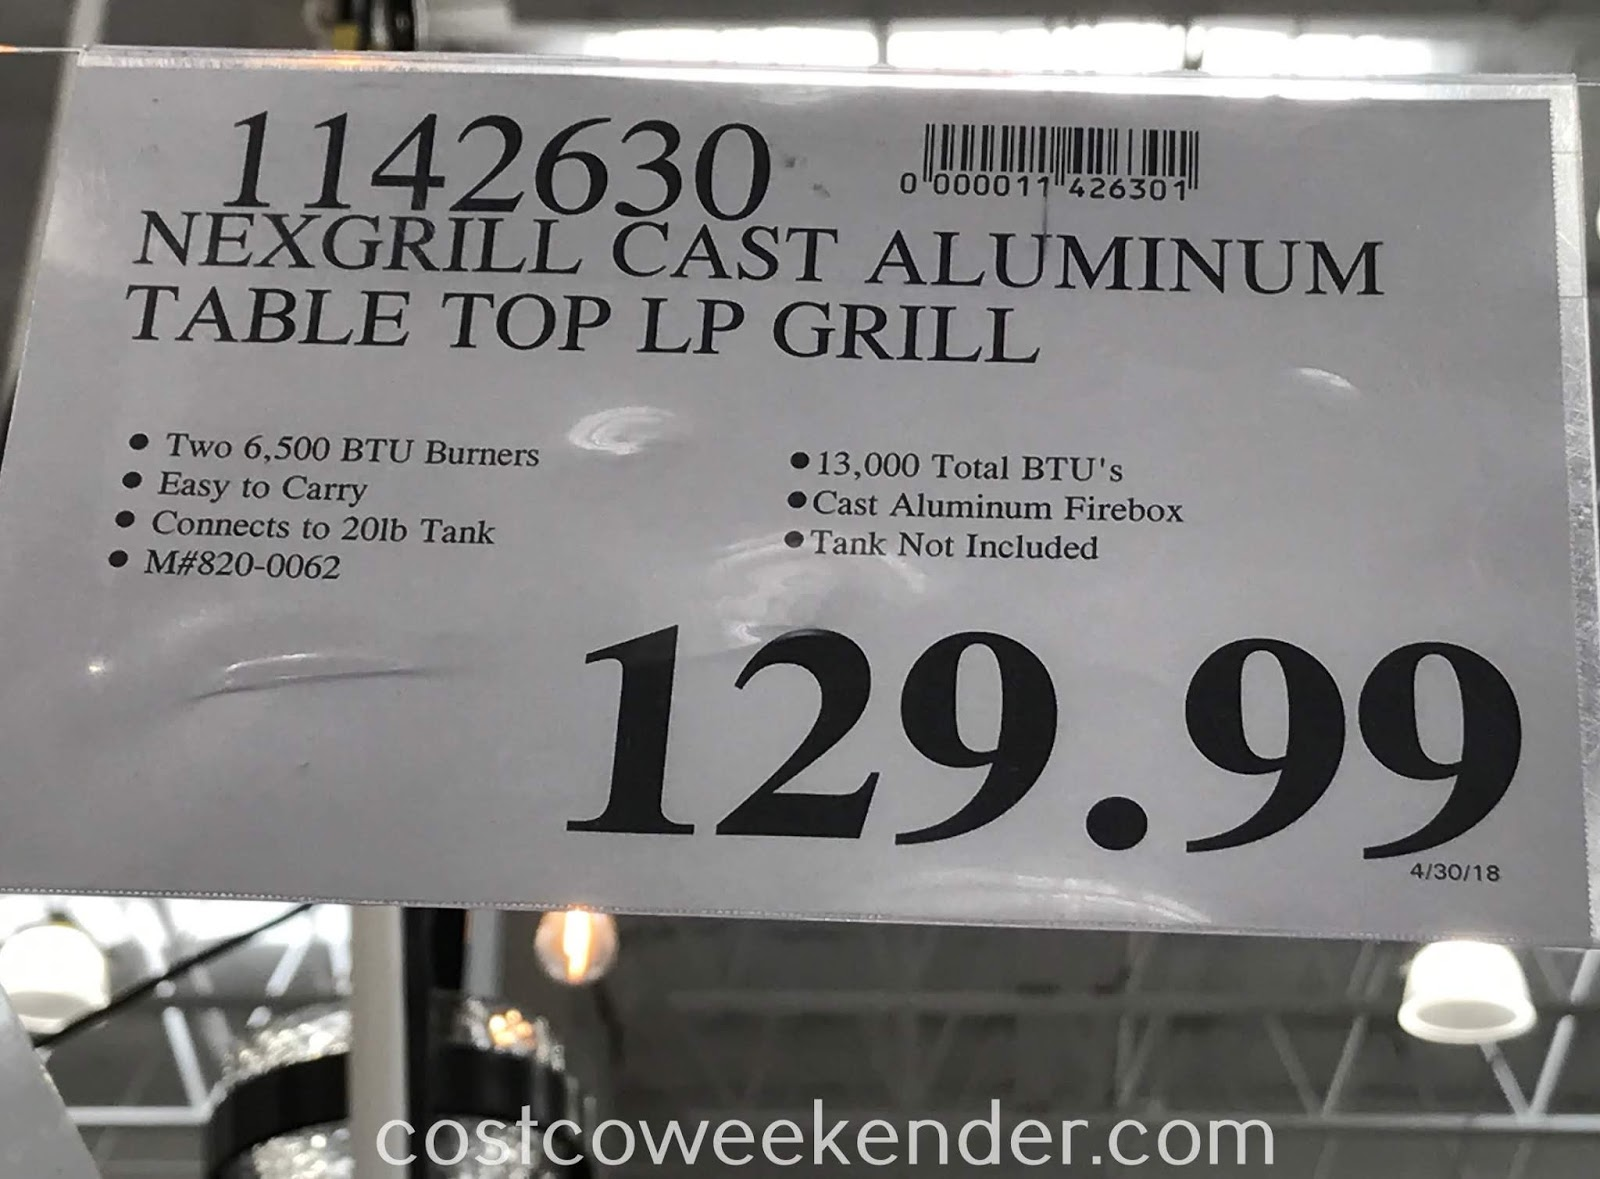 Deal for the Nexgrill Fortress 2 Burner Cast Aluminum Table Top Gas Grill at Costco